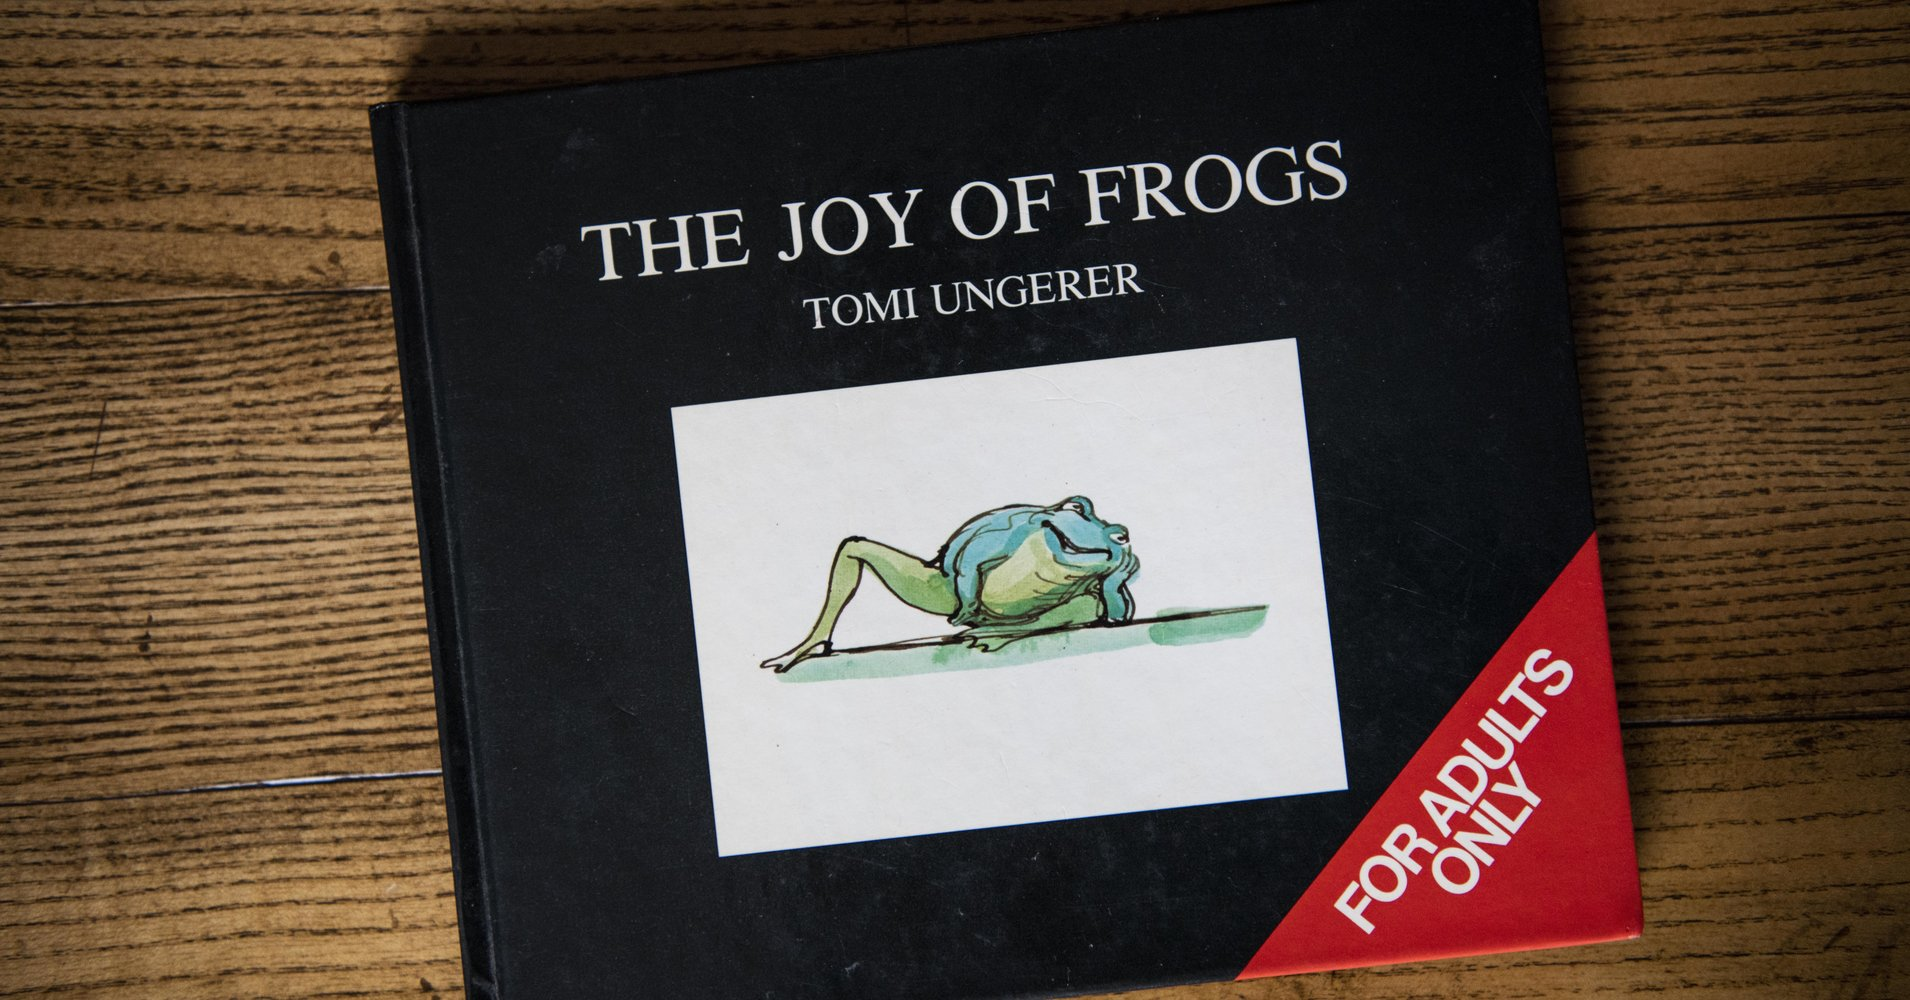 Tomi Ungerer Has Died, But His Frog-Centric Sex Bible Will Live Forever